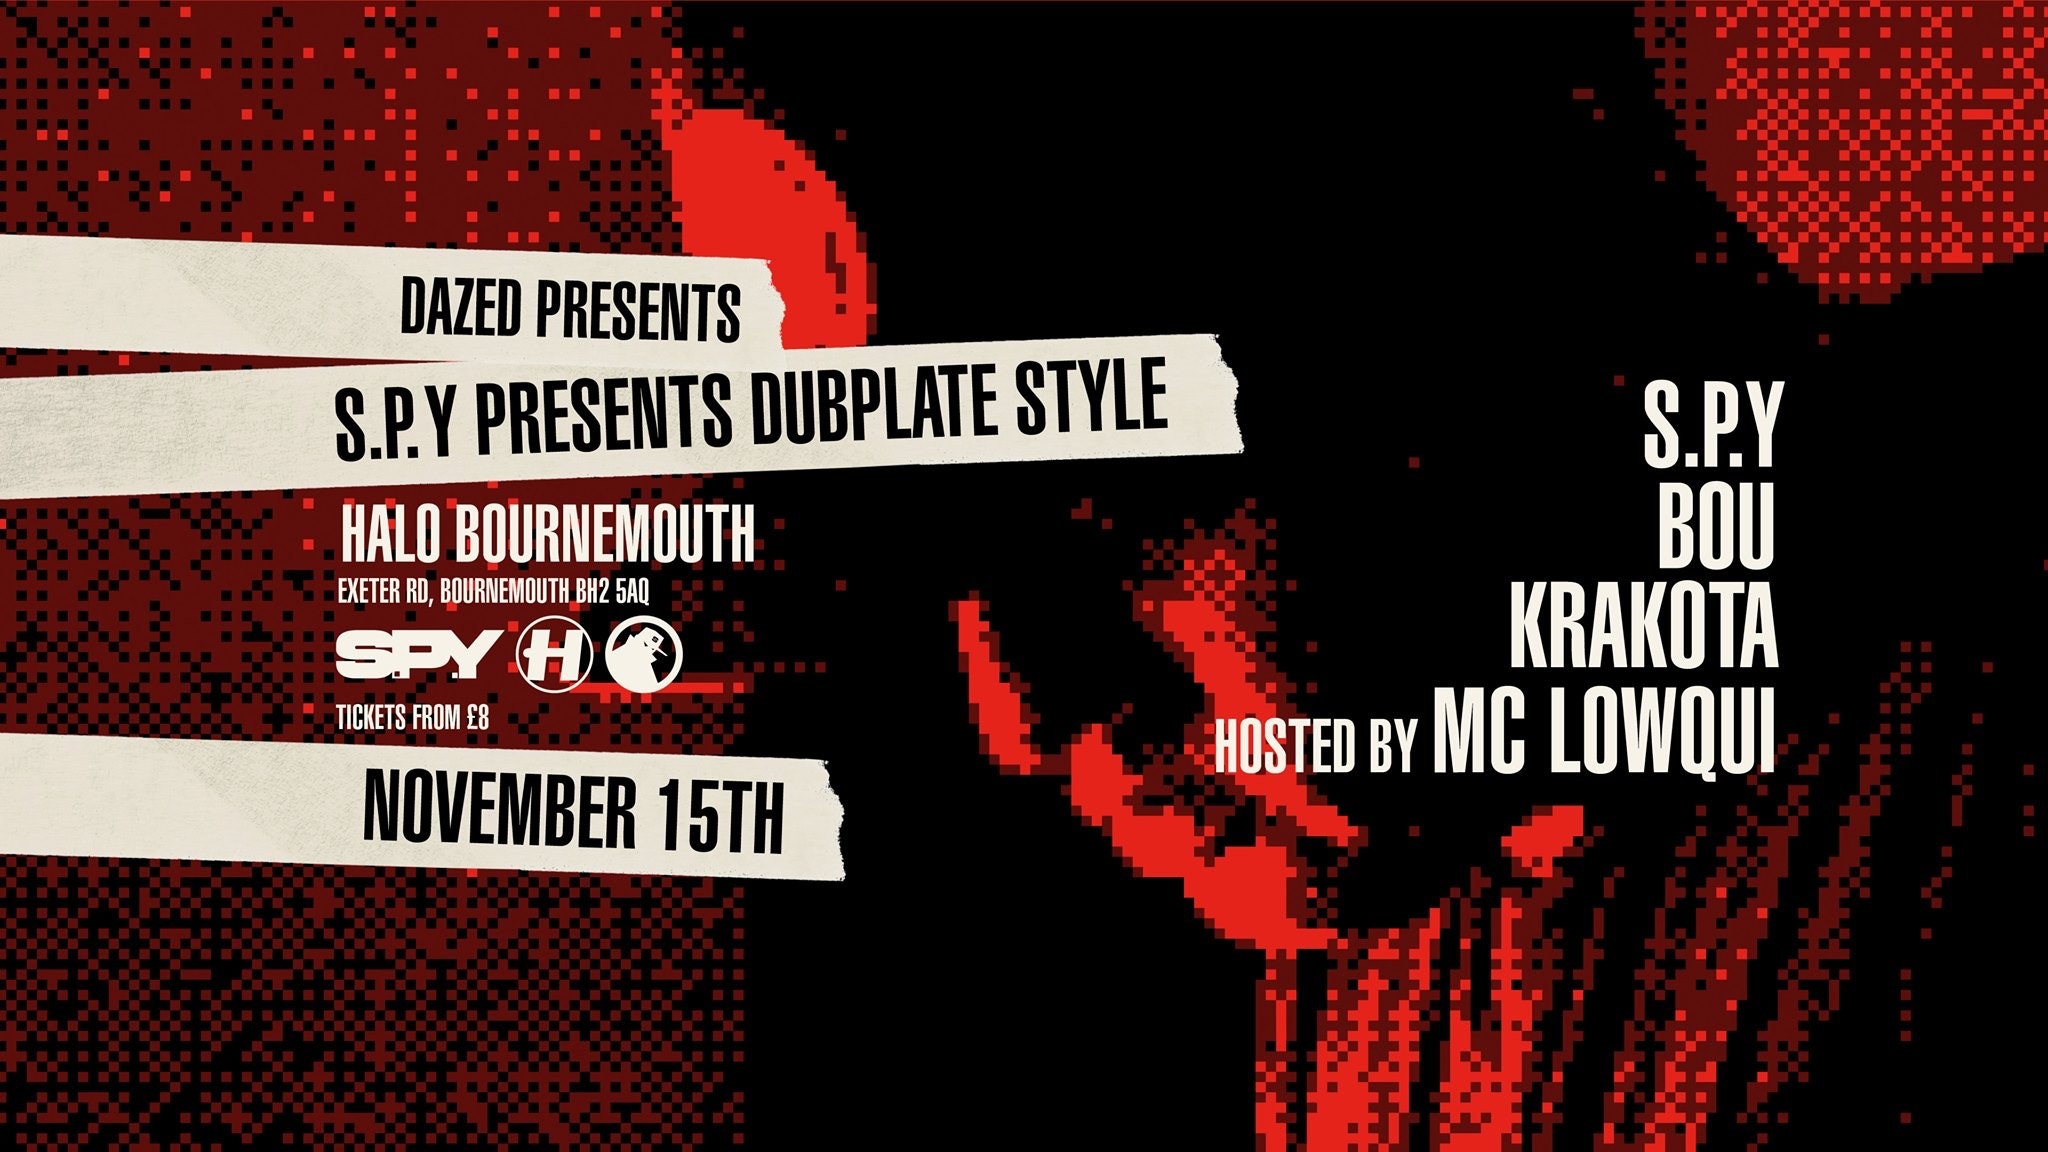 Dazed Presents S.P.Y Dubplate Style